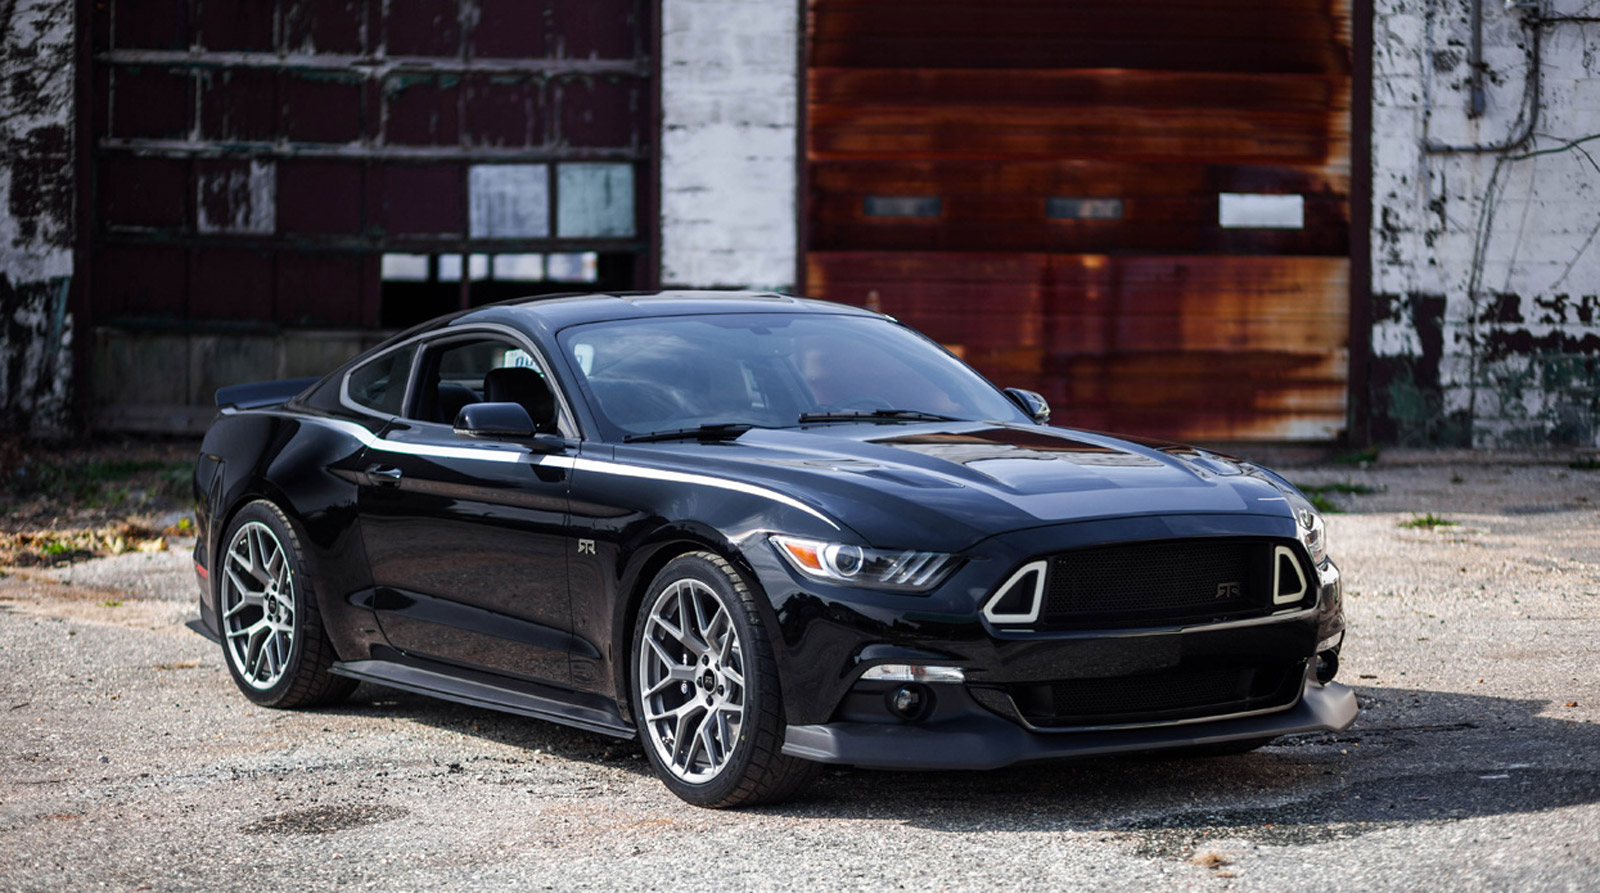 2015 ford mustang rtr revealed offers up to 725 horsepower. Black Bedroom Furniture Sets. Home Design Ideas